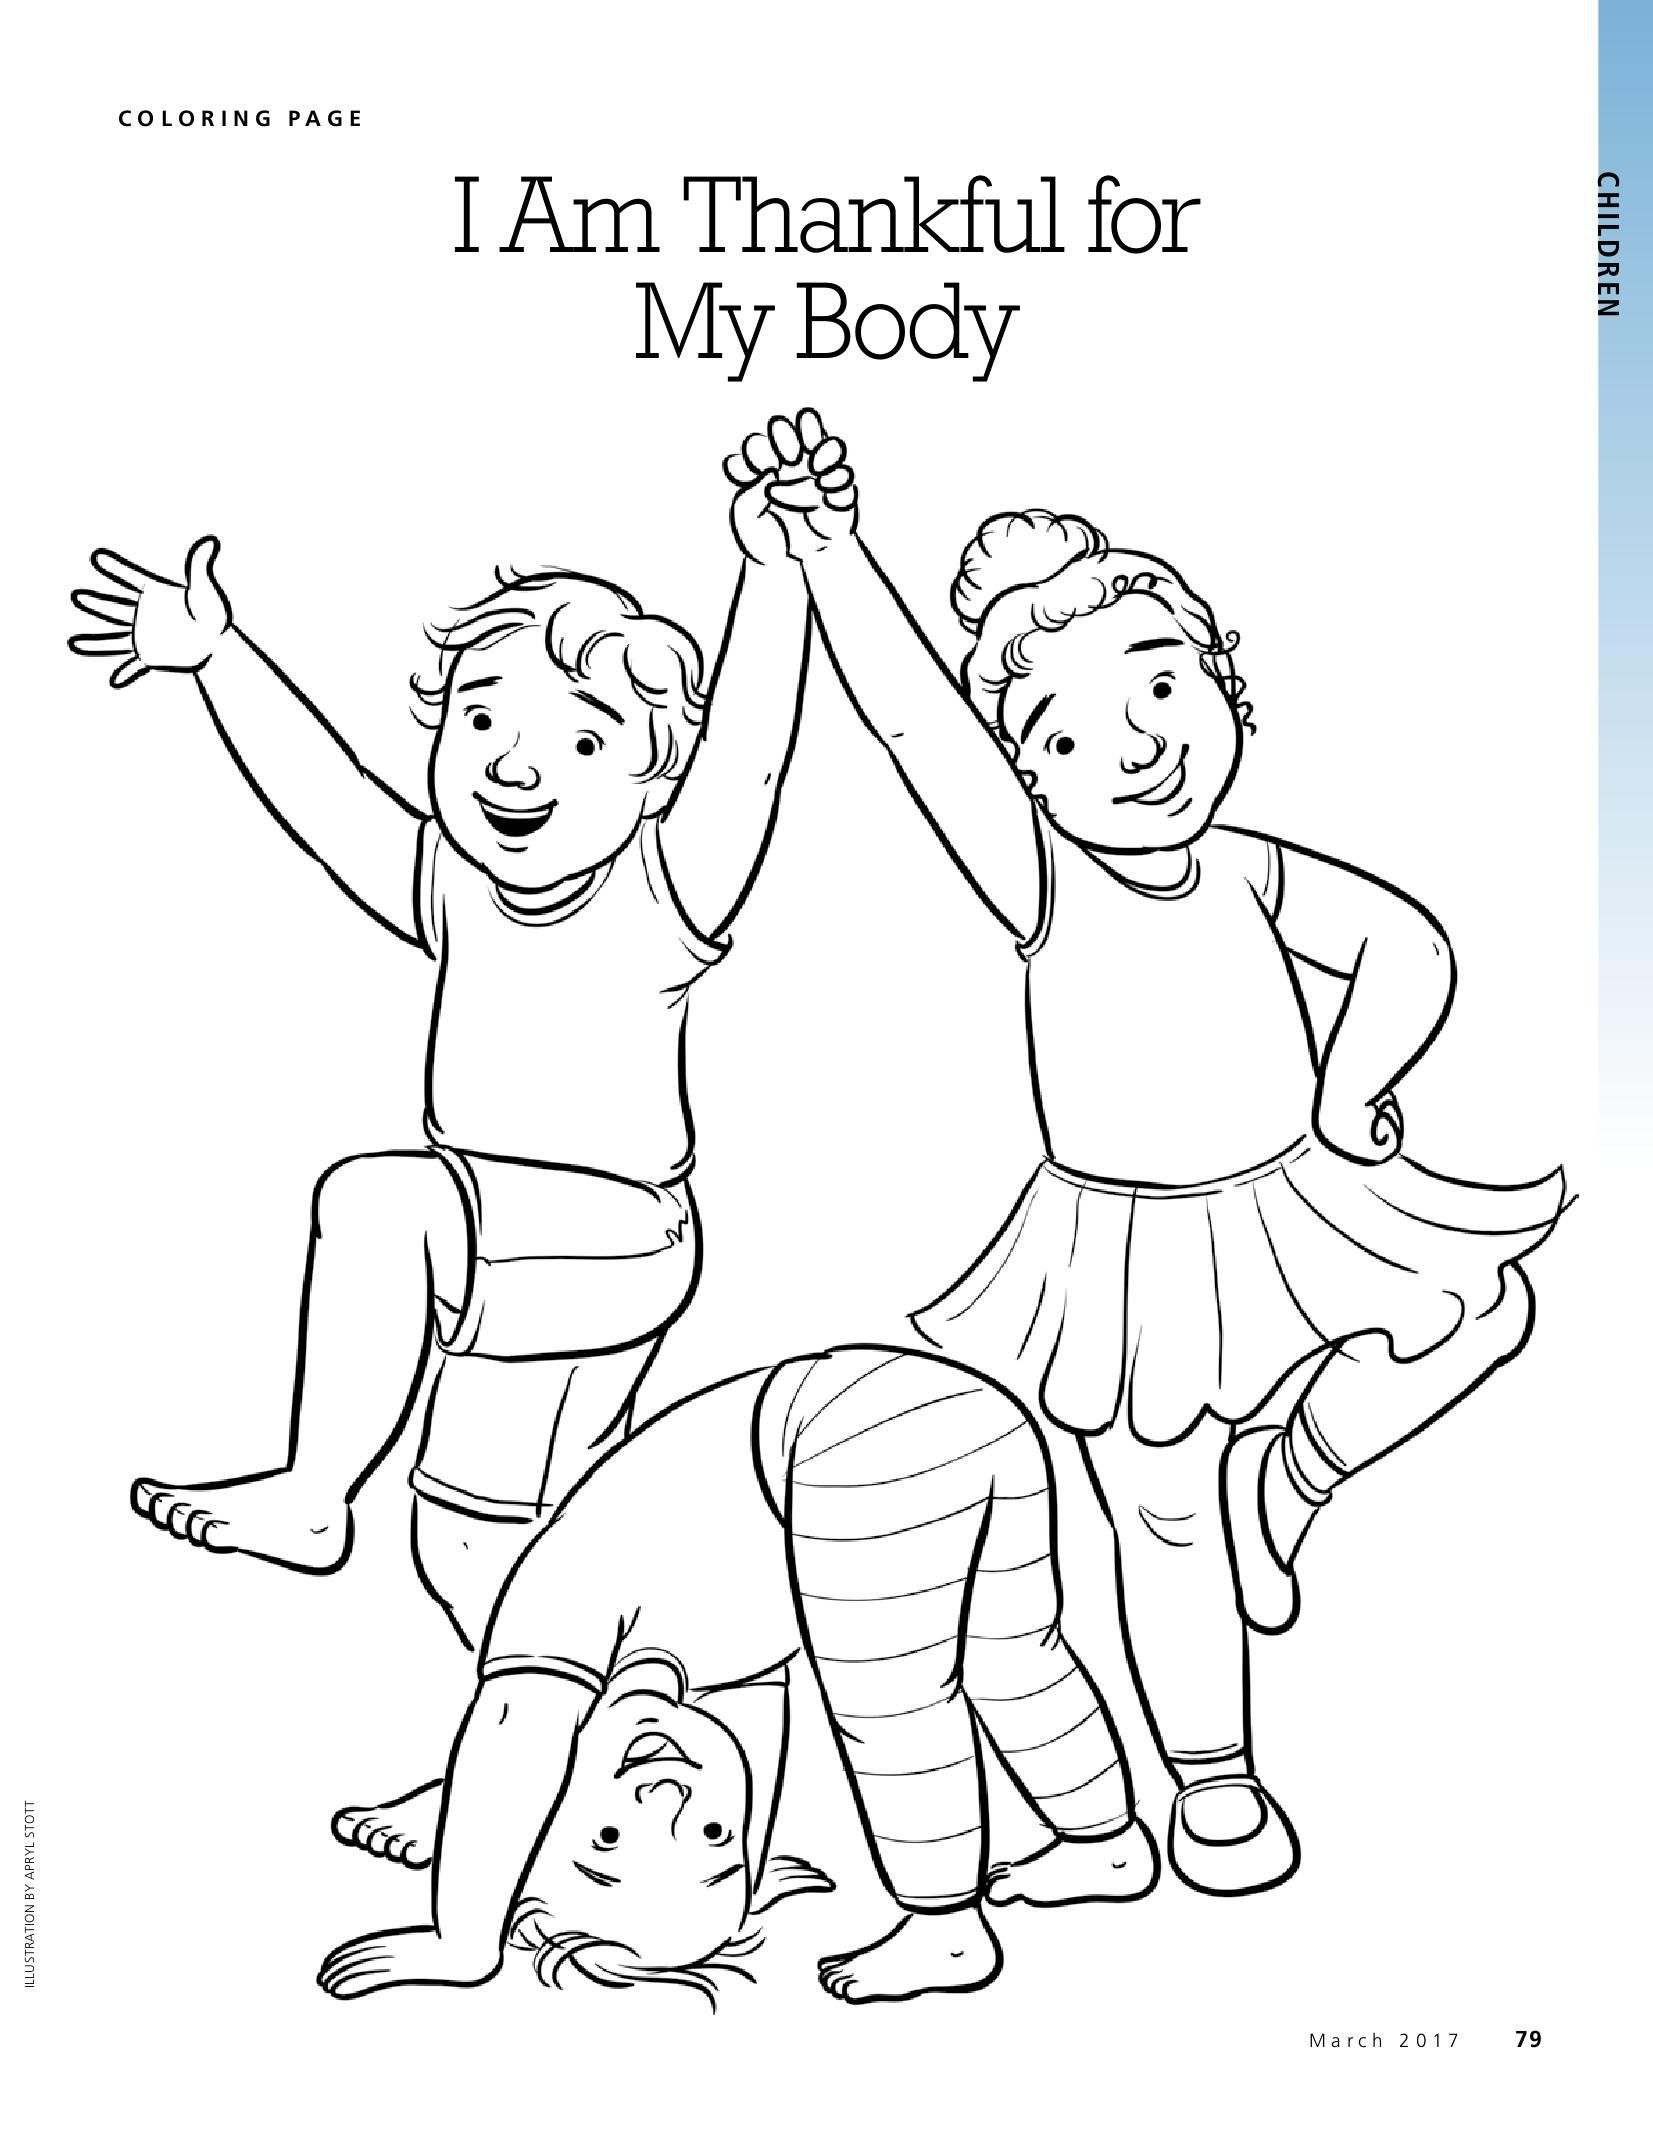 Emejing Coloring Pages For March Ideas Amazing Printable